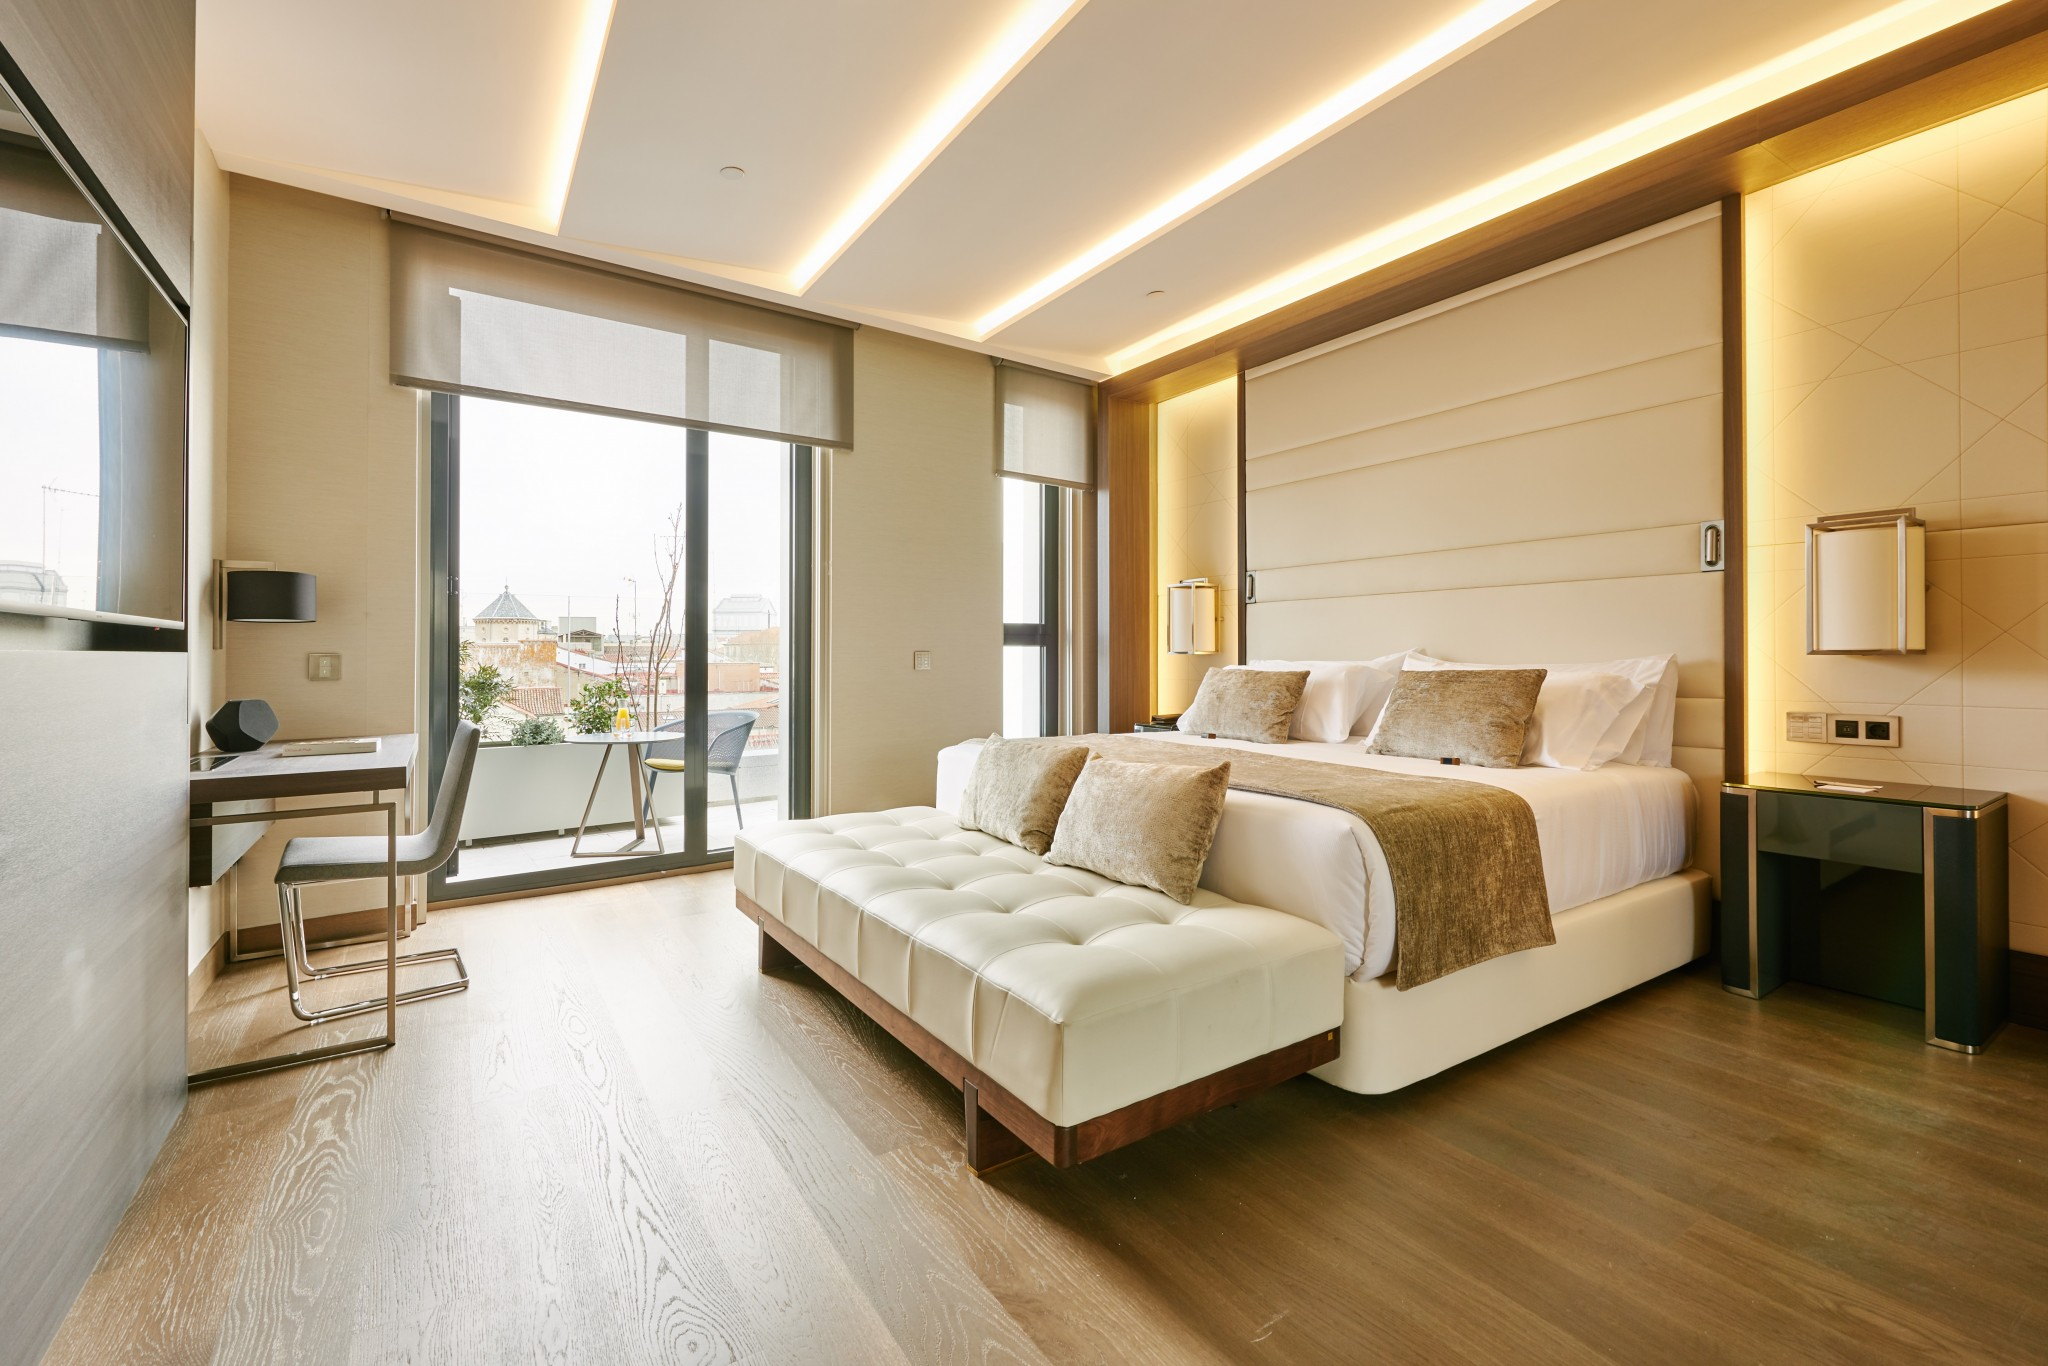 Superior room with terrace vp plaza espa a design 5 star for Design hotel madrid